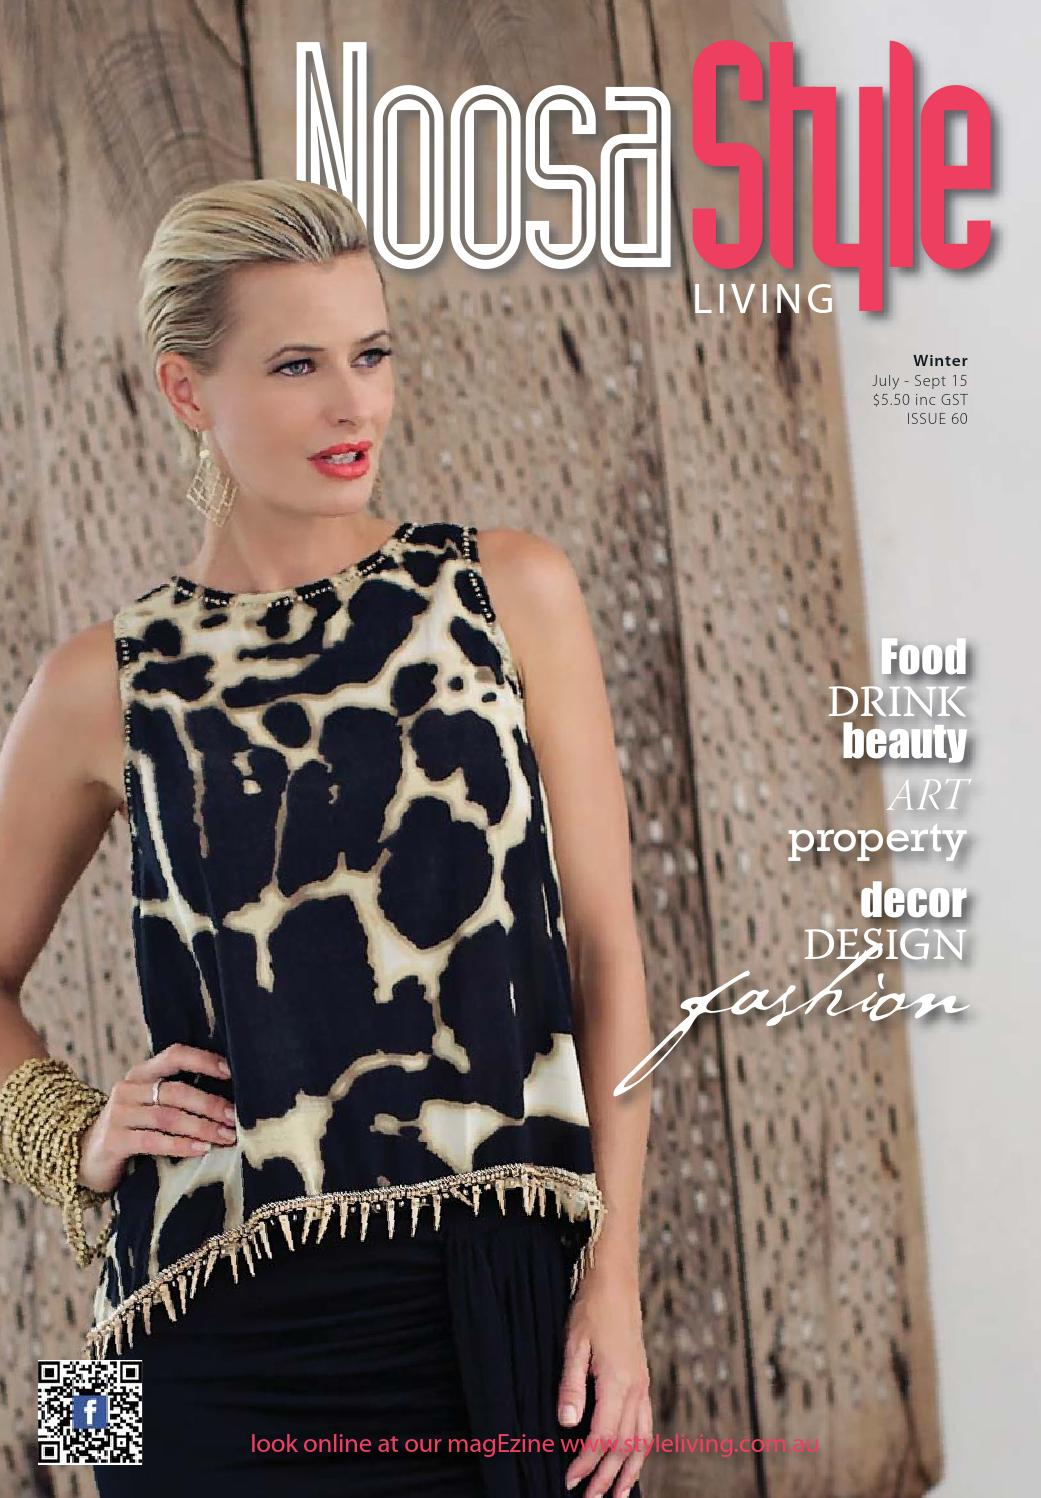 Noosa STYLE Winter 2015 by STYLE